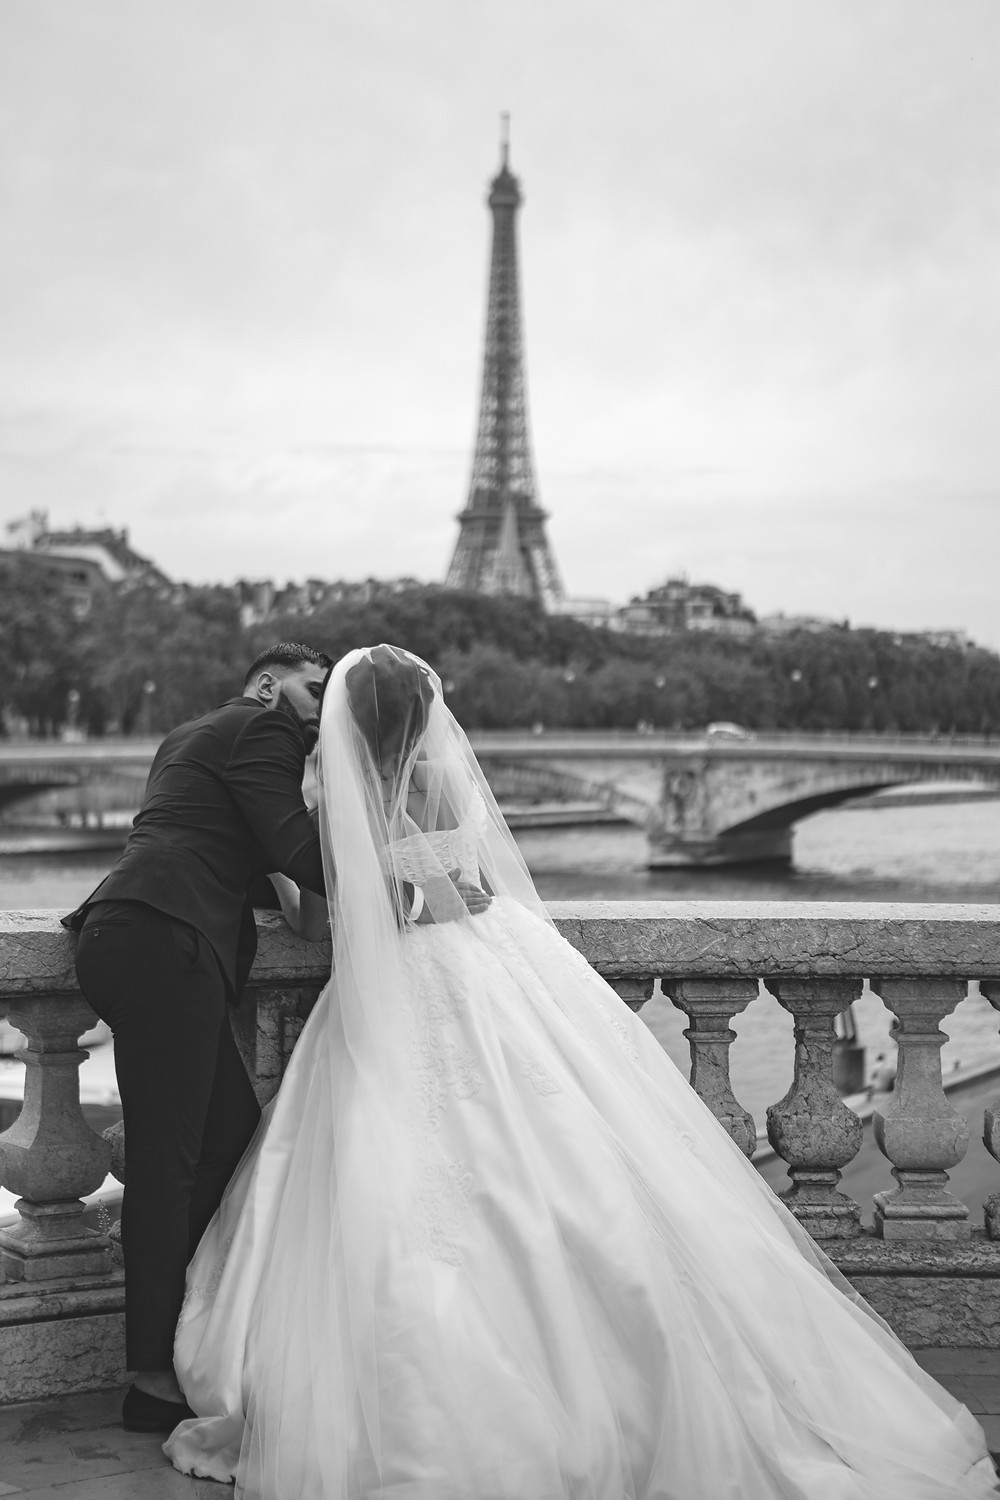 Newly weds in front of the Eiffel Tower